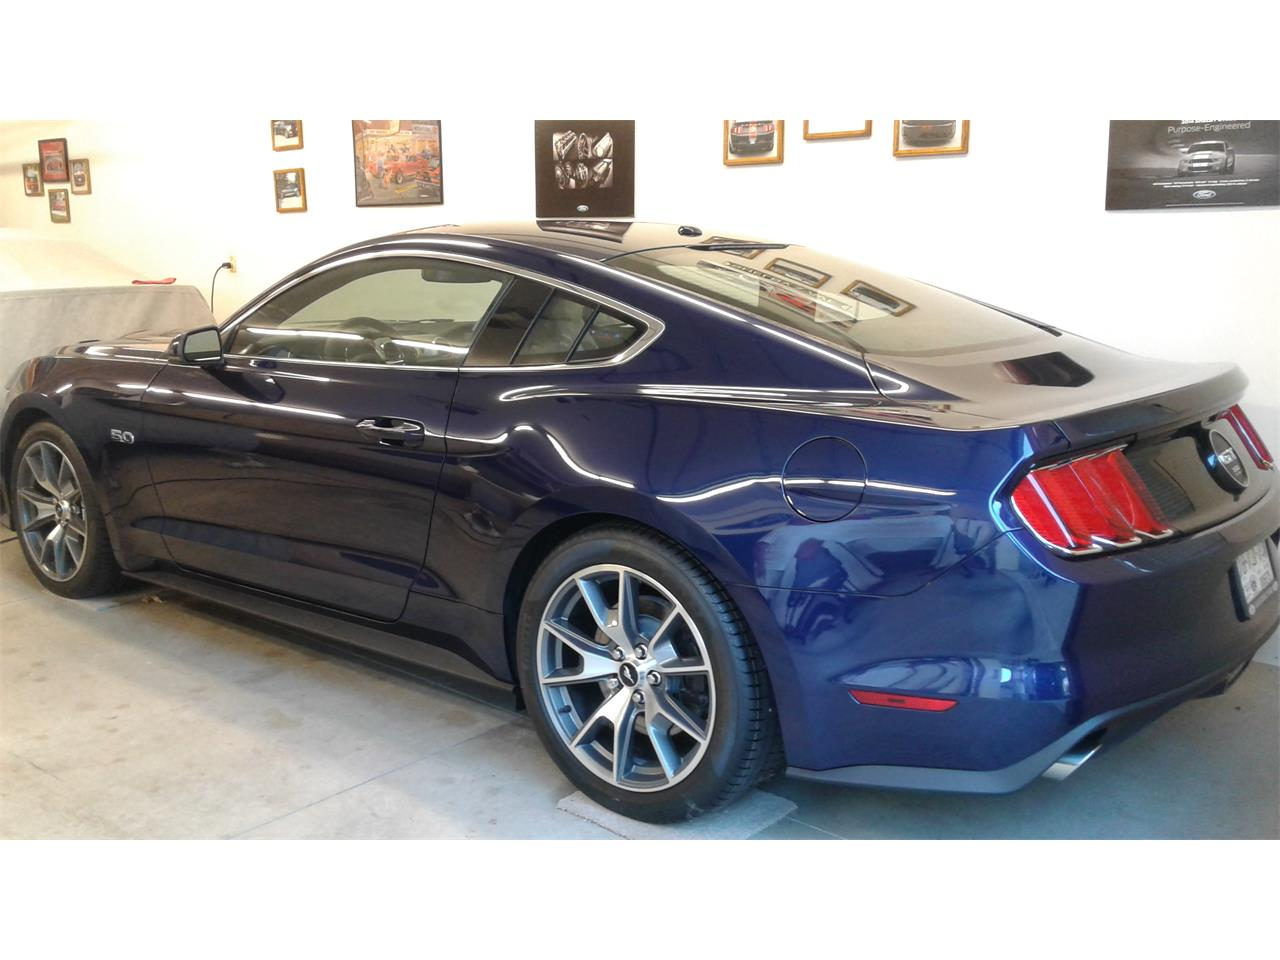 2015 Ford Mustang GT (CC-1008686) for sale in St. Clair, Michigan